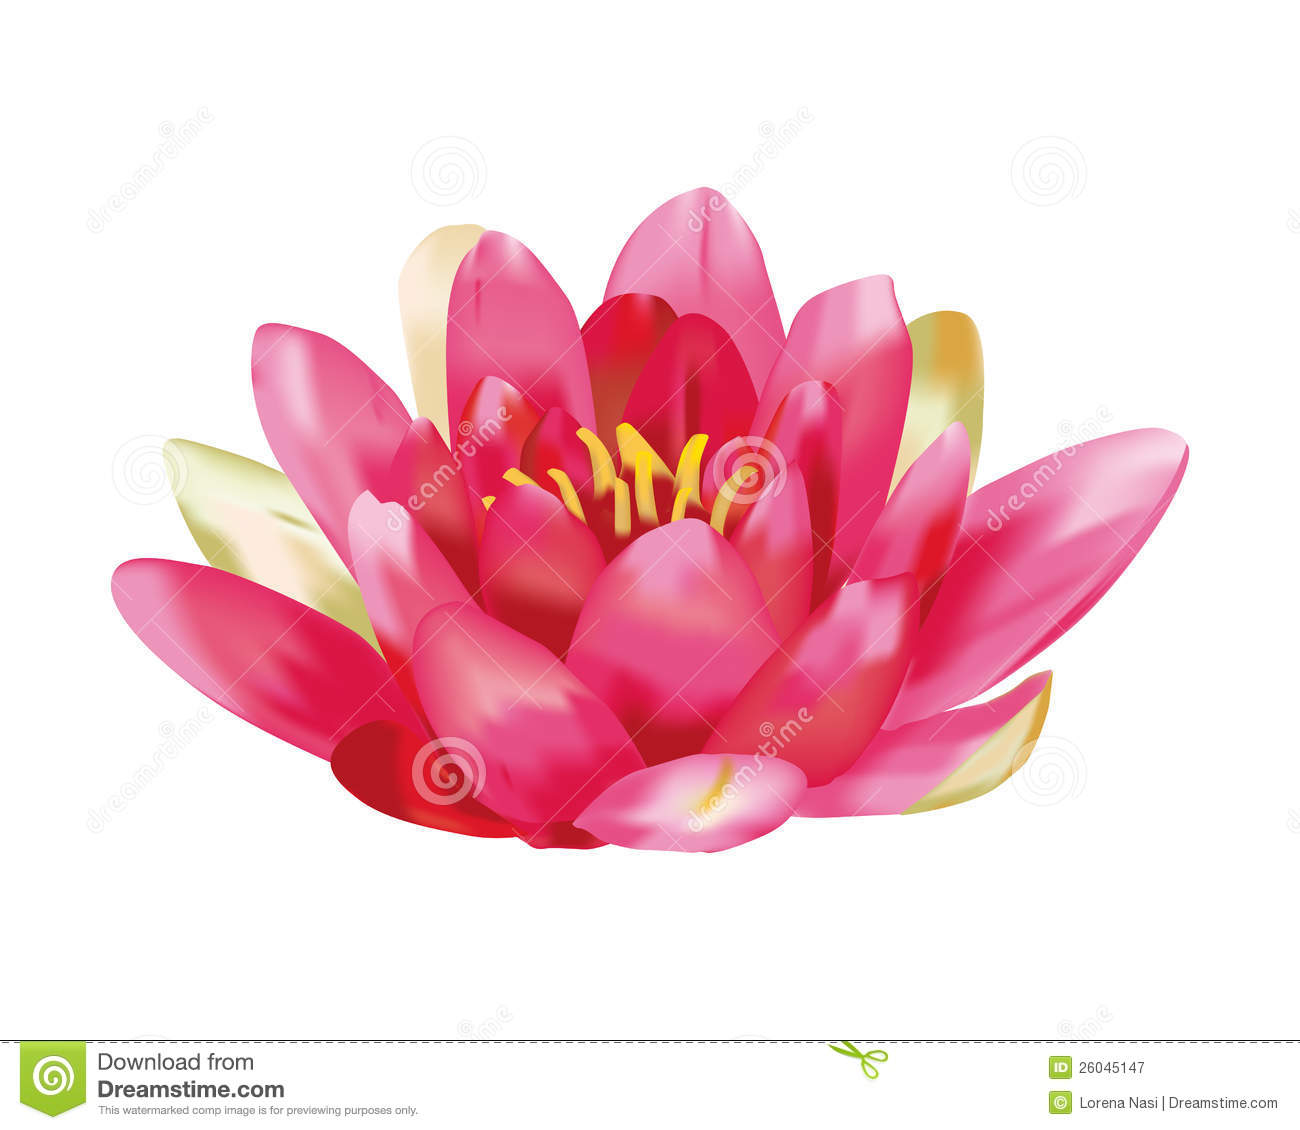 Water Lily Images Free.